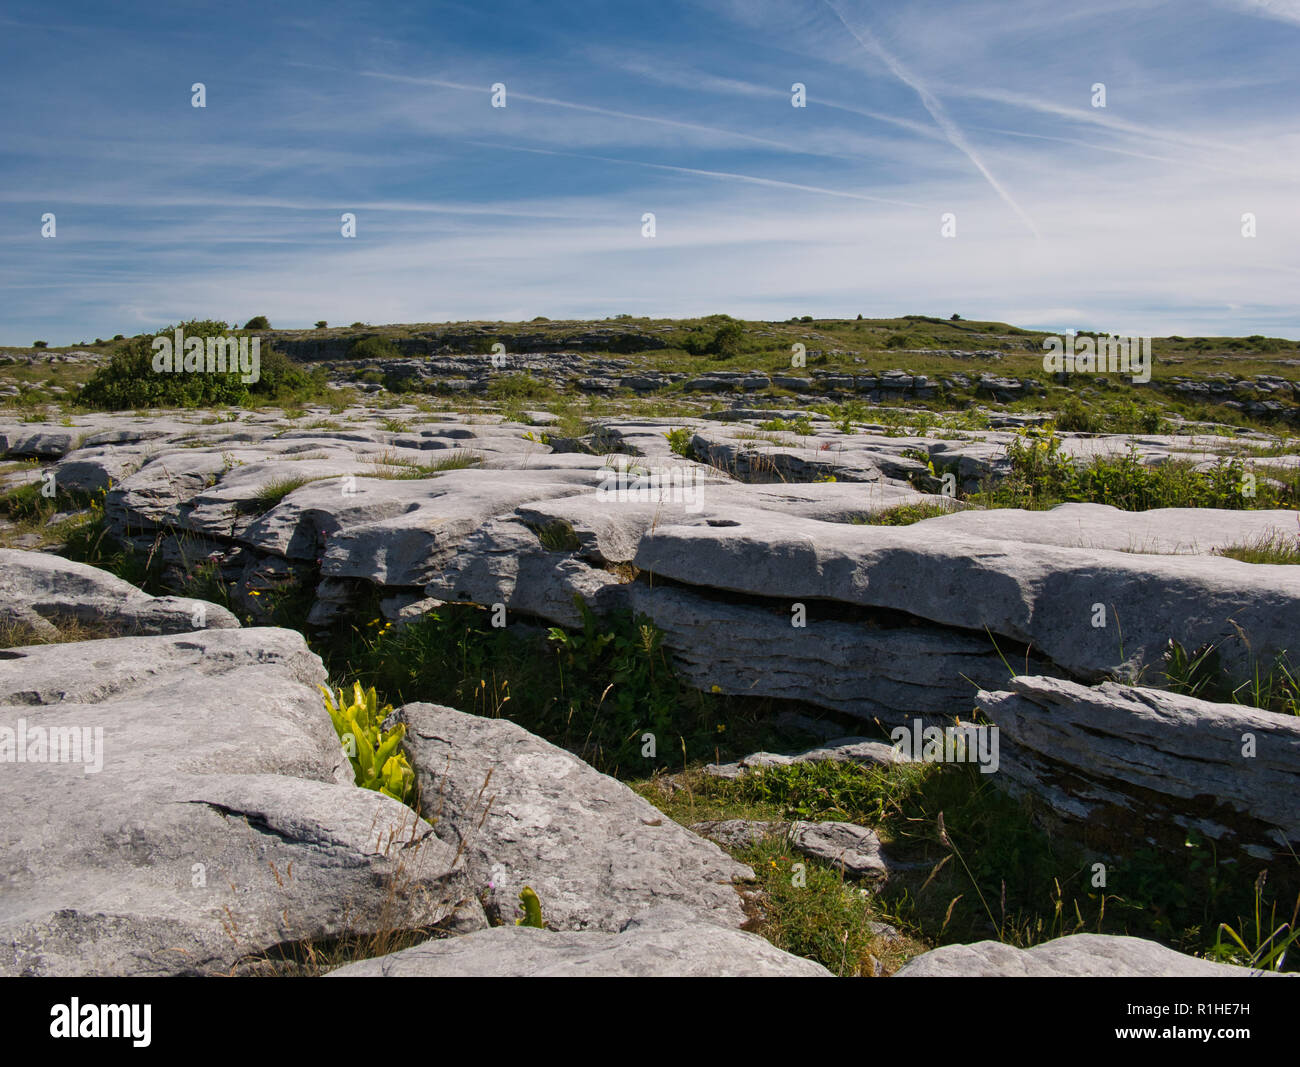 The rocky landscape in Ireland near Poulnabrone in fine weather Stock Photo